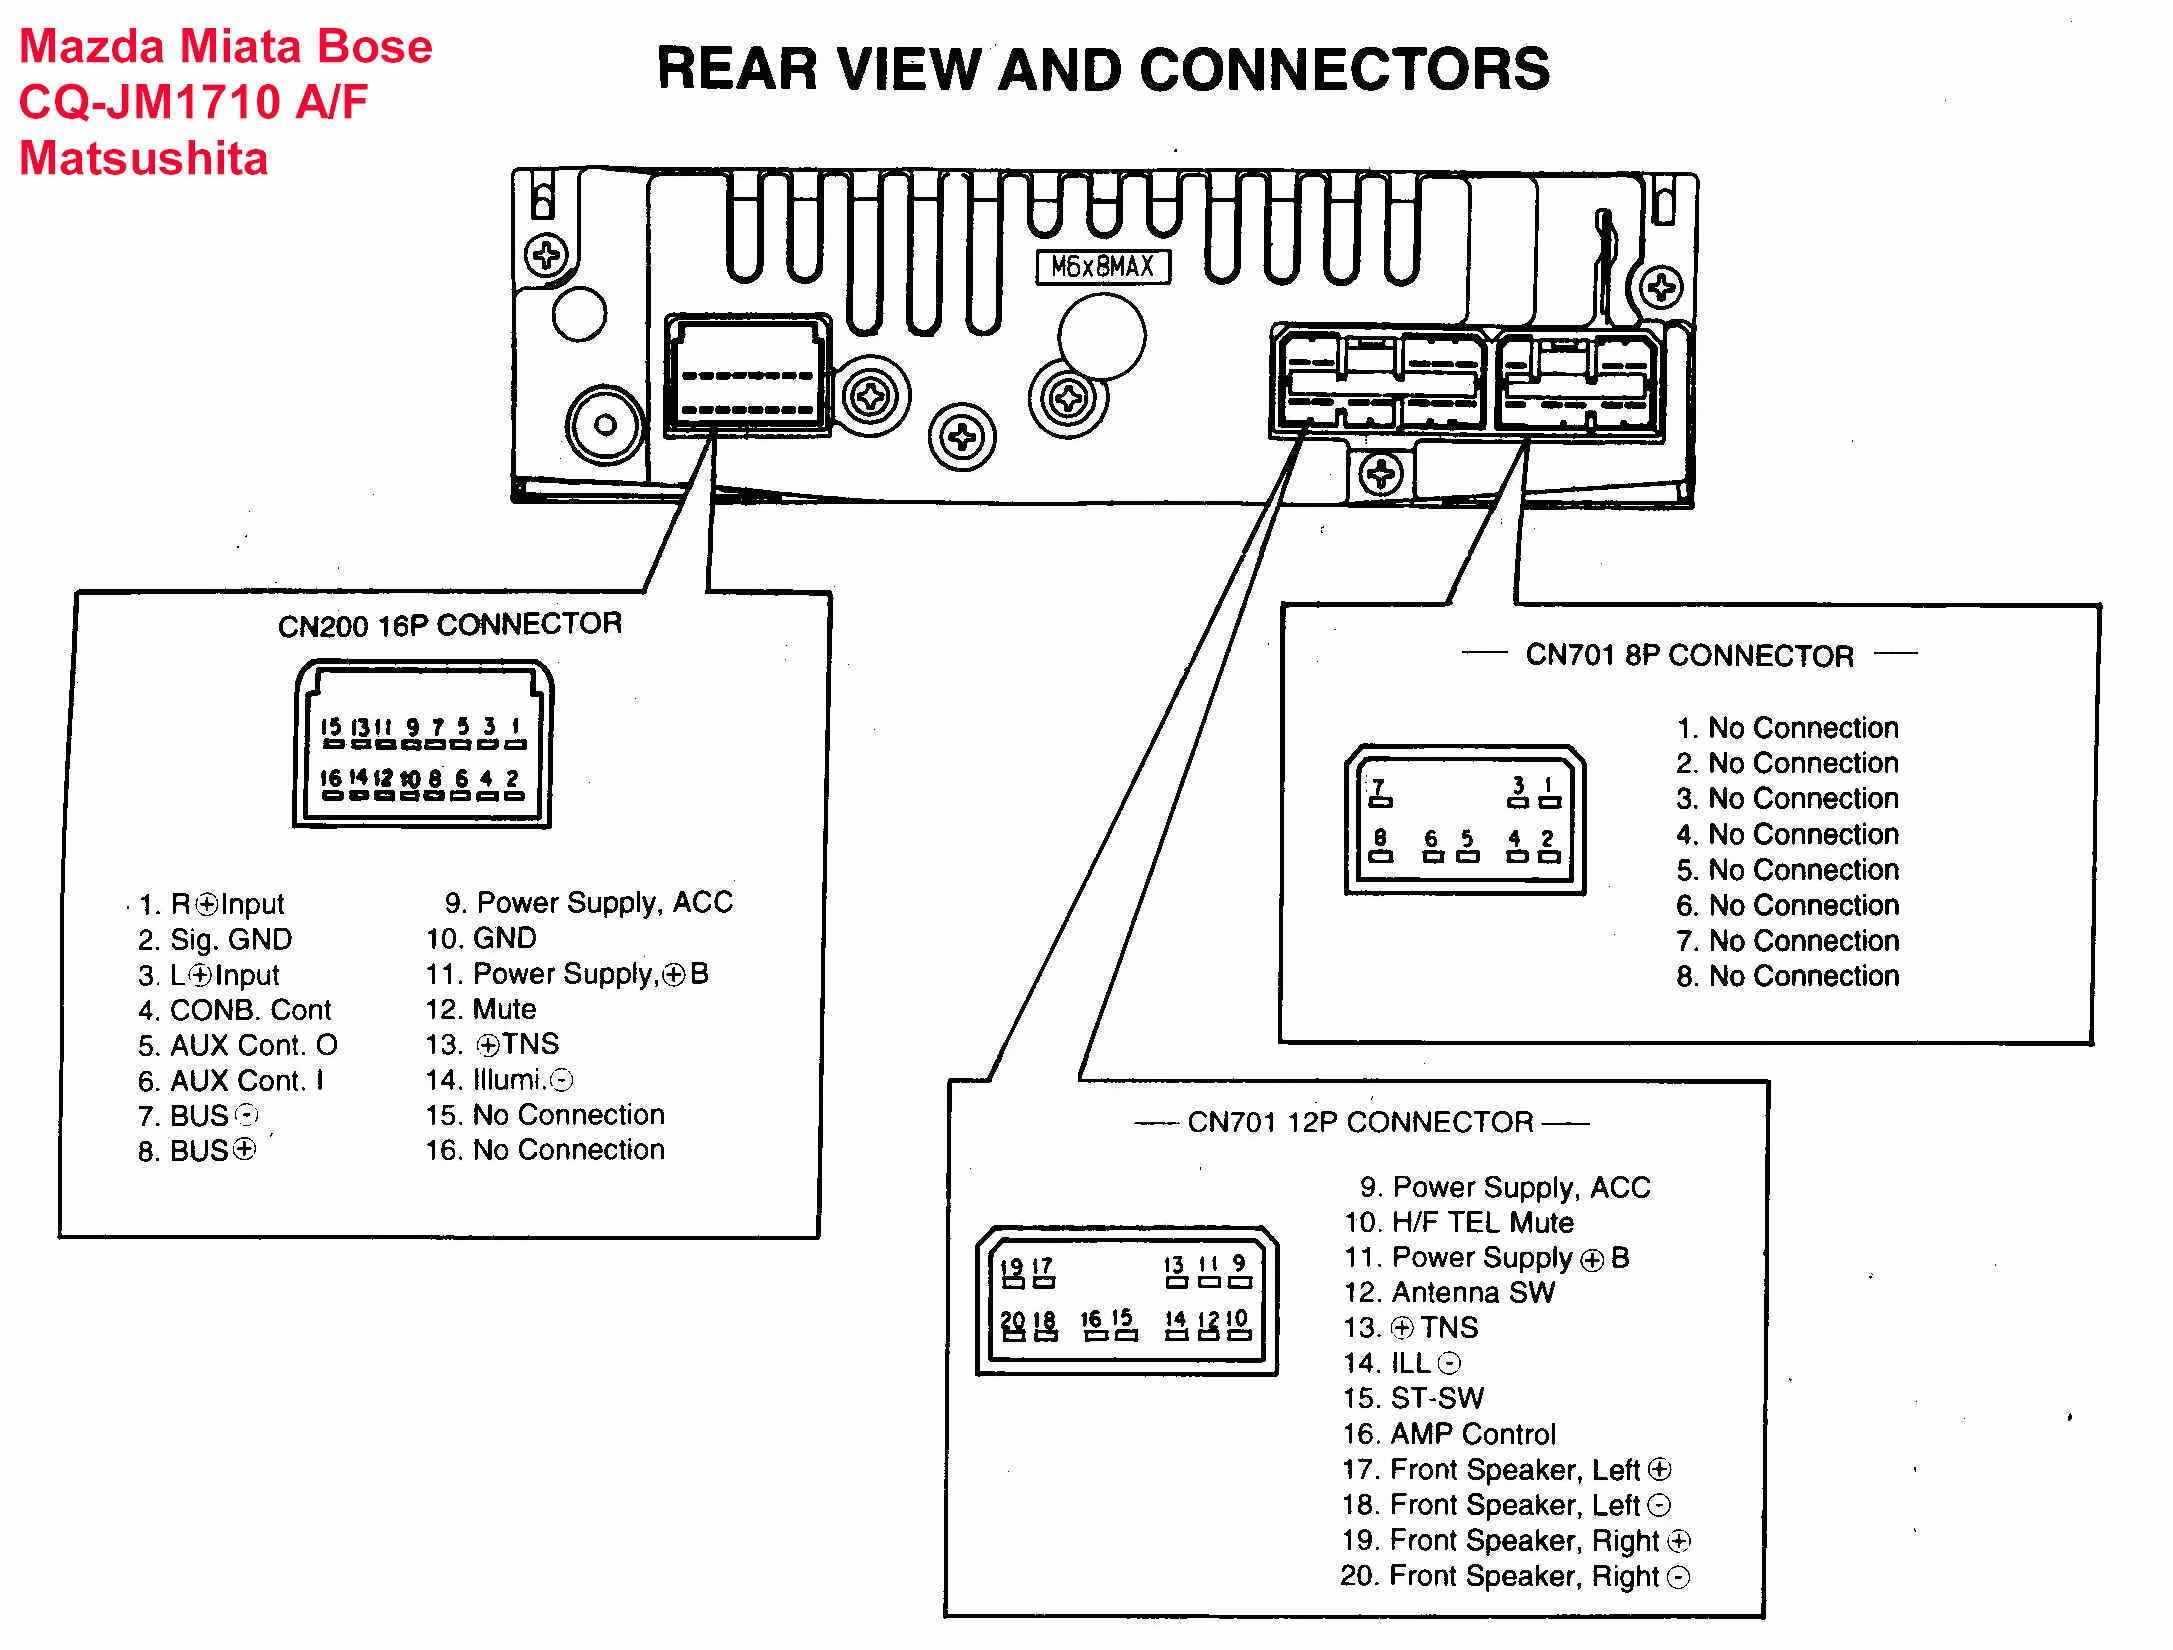 fujitsu ten 86120 pinout new wiring diagram image. Black Bedroom Furniture Sets. Home Design Ideas